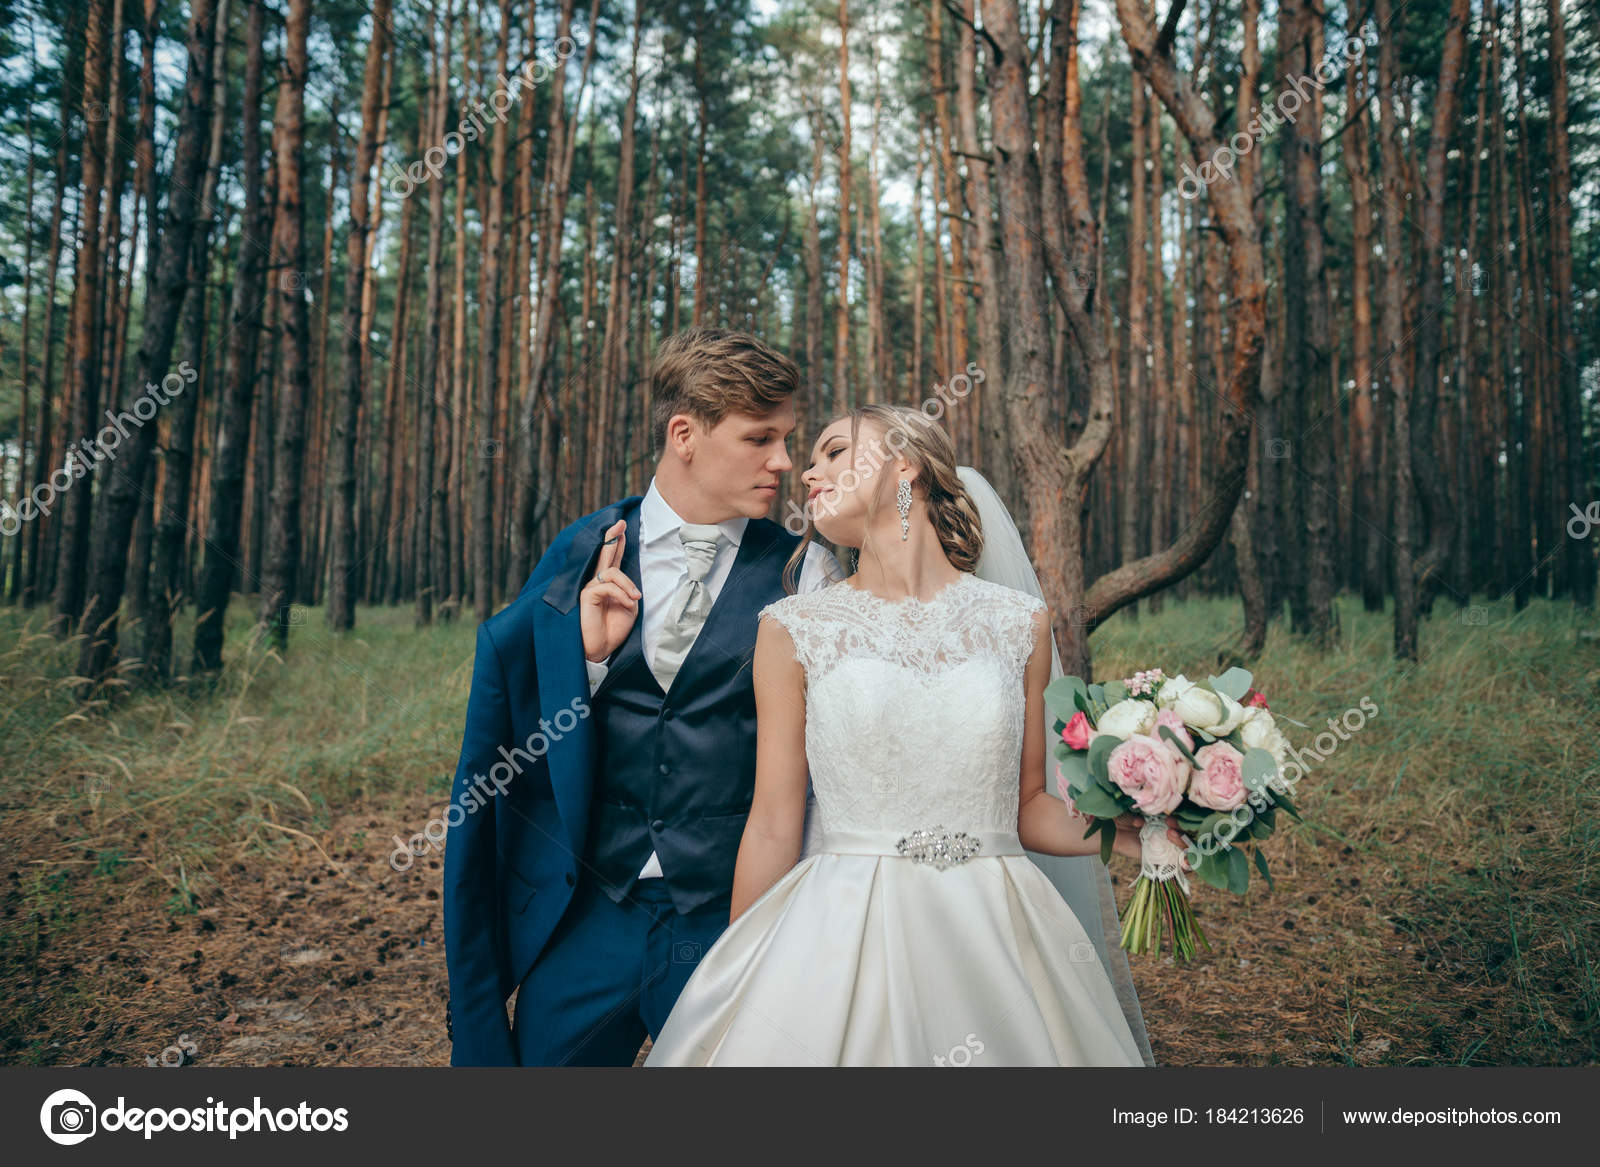 The bride and groom in wedding dresses on natural background ...